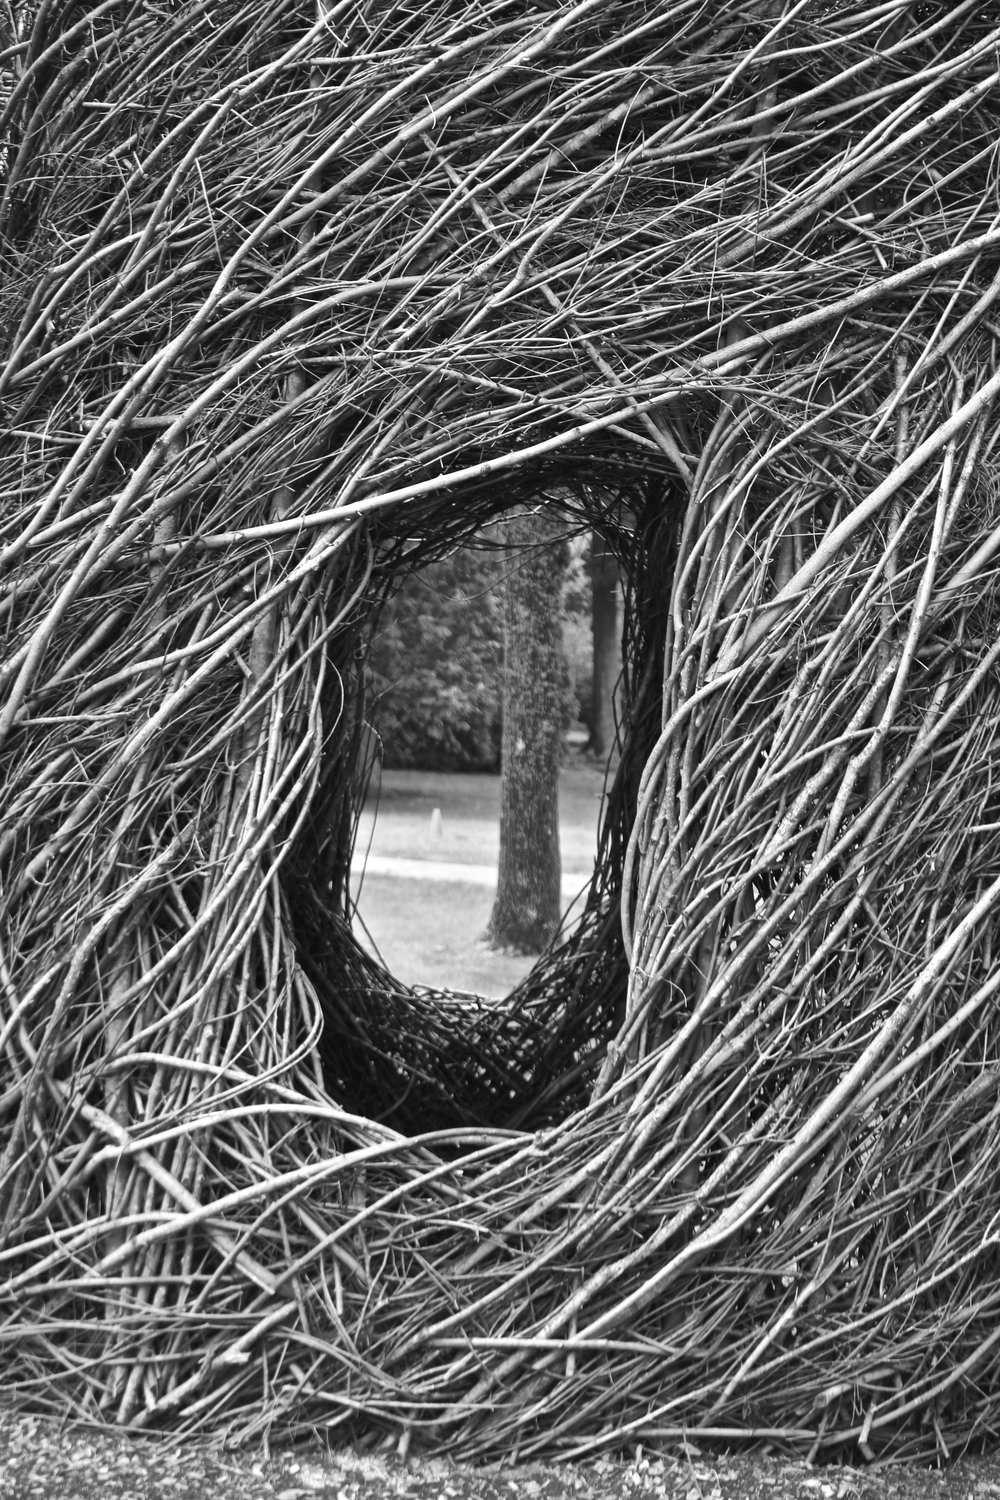 Little Bitty Pretty One by Patrick Dougherty, Cheekwood Botanical Garden, Nashville, TN.